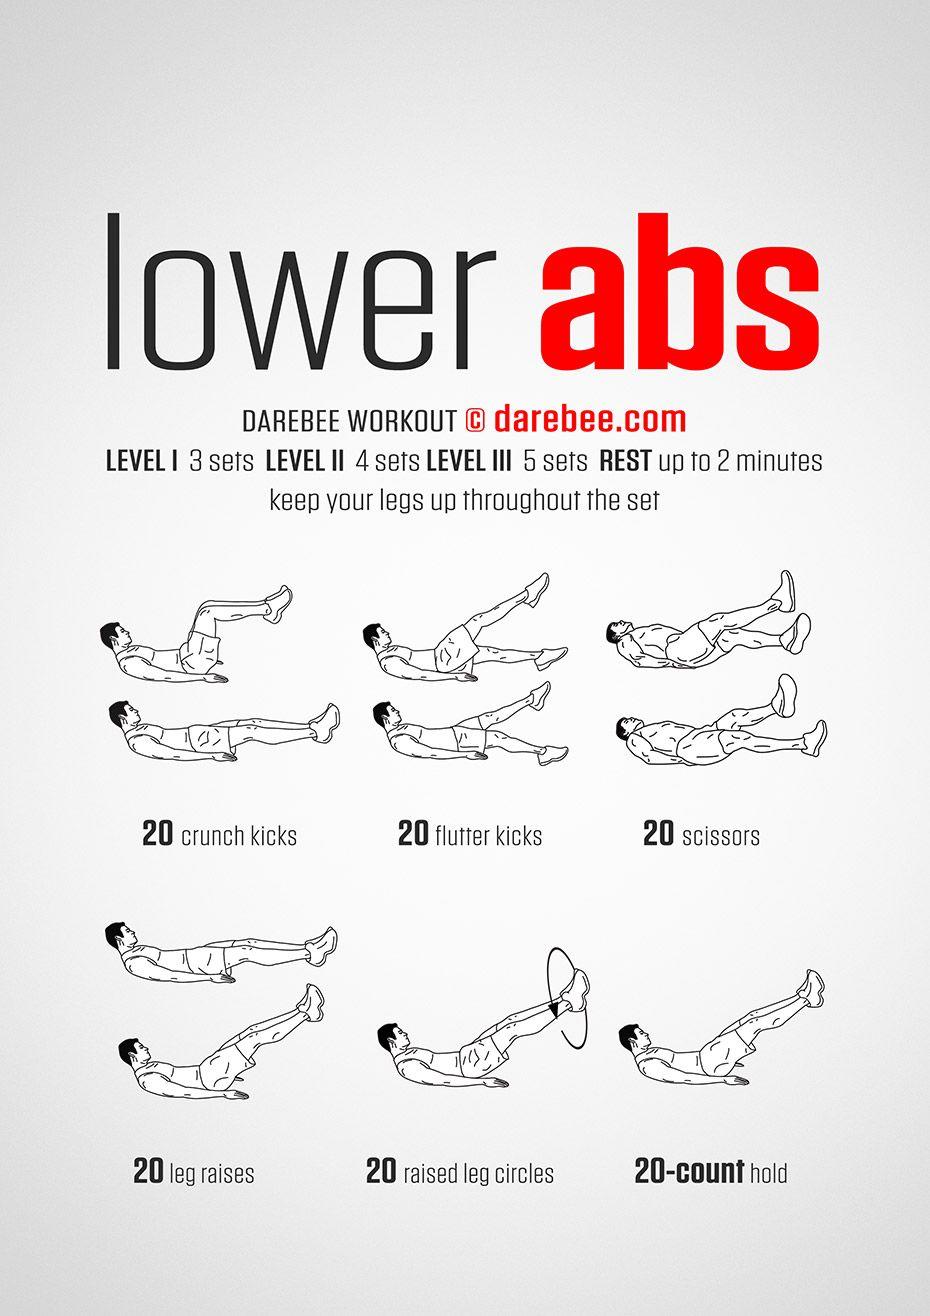 medium resolution of new lower abs workout darebee workout fitness abs